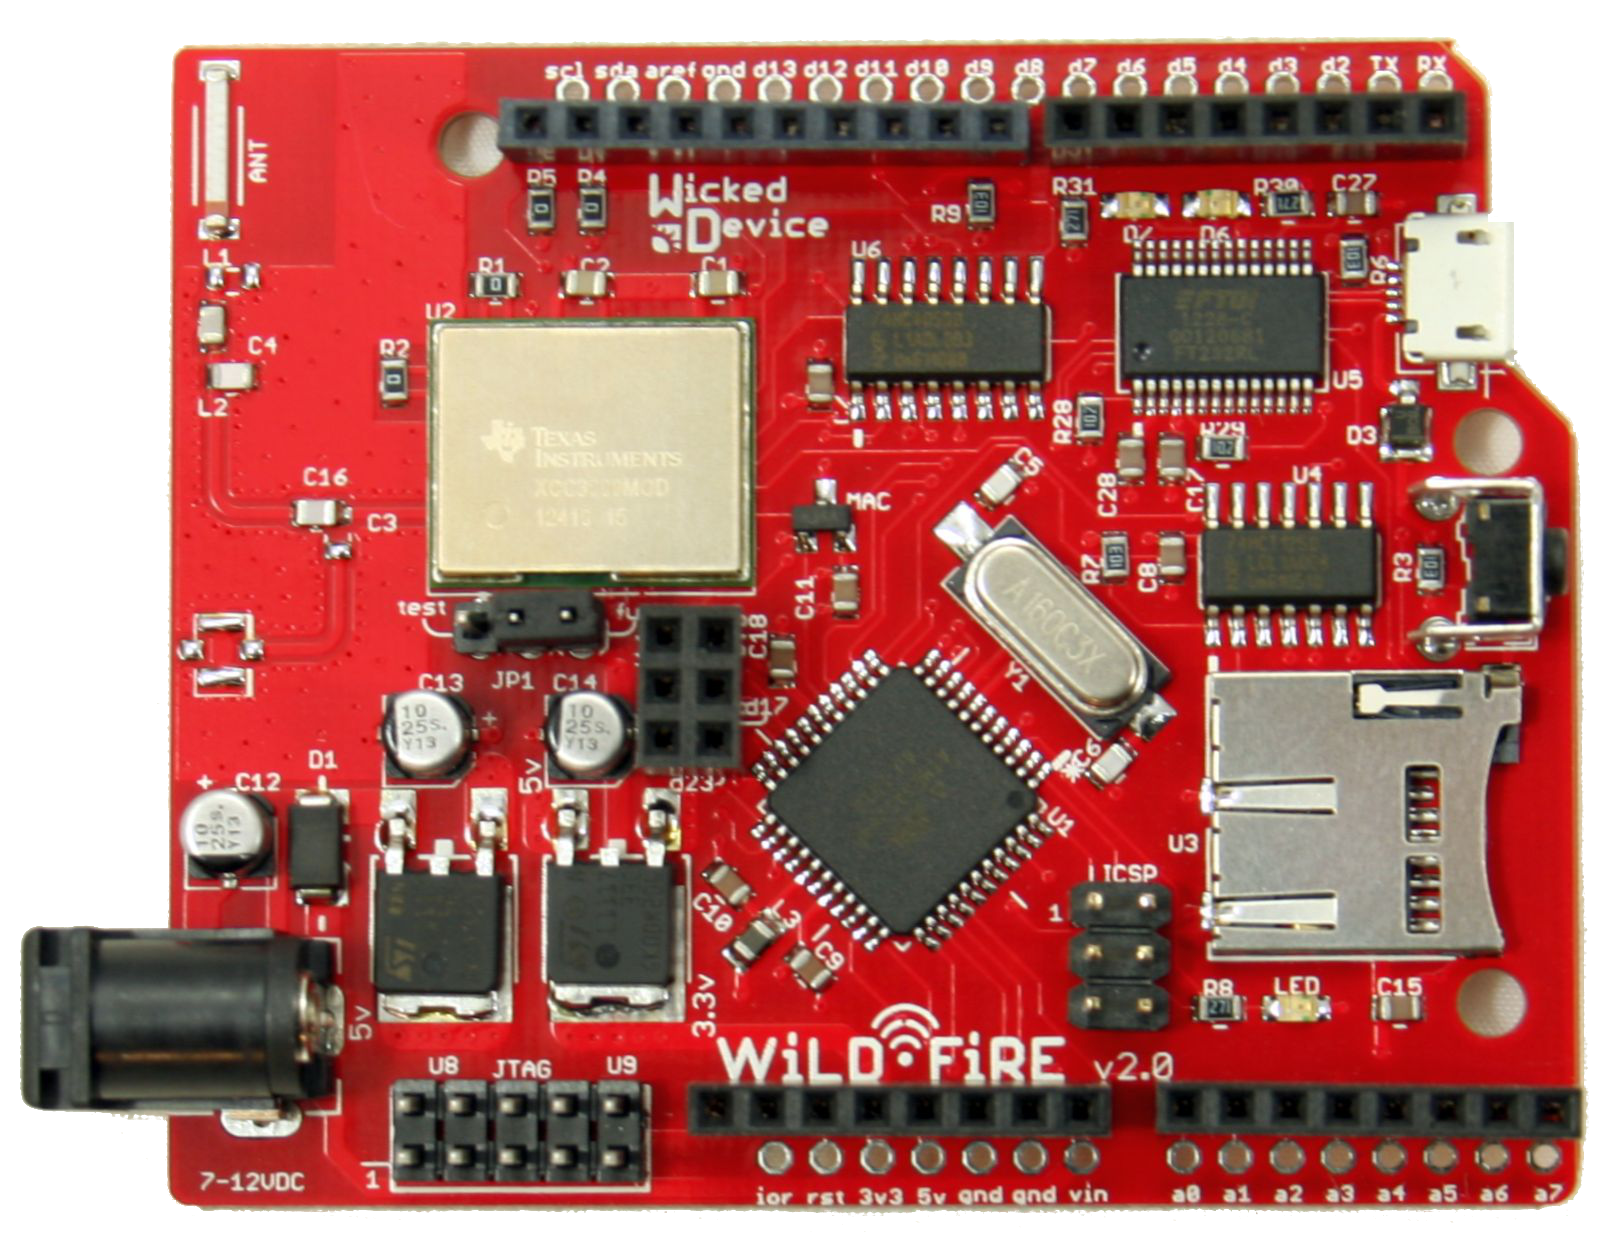 A New WiFi Board Appears: Introducing the WildFire